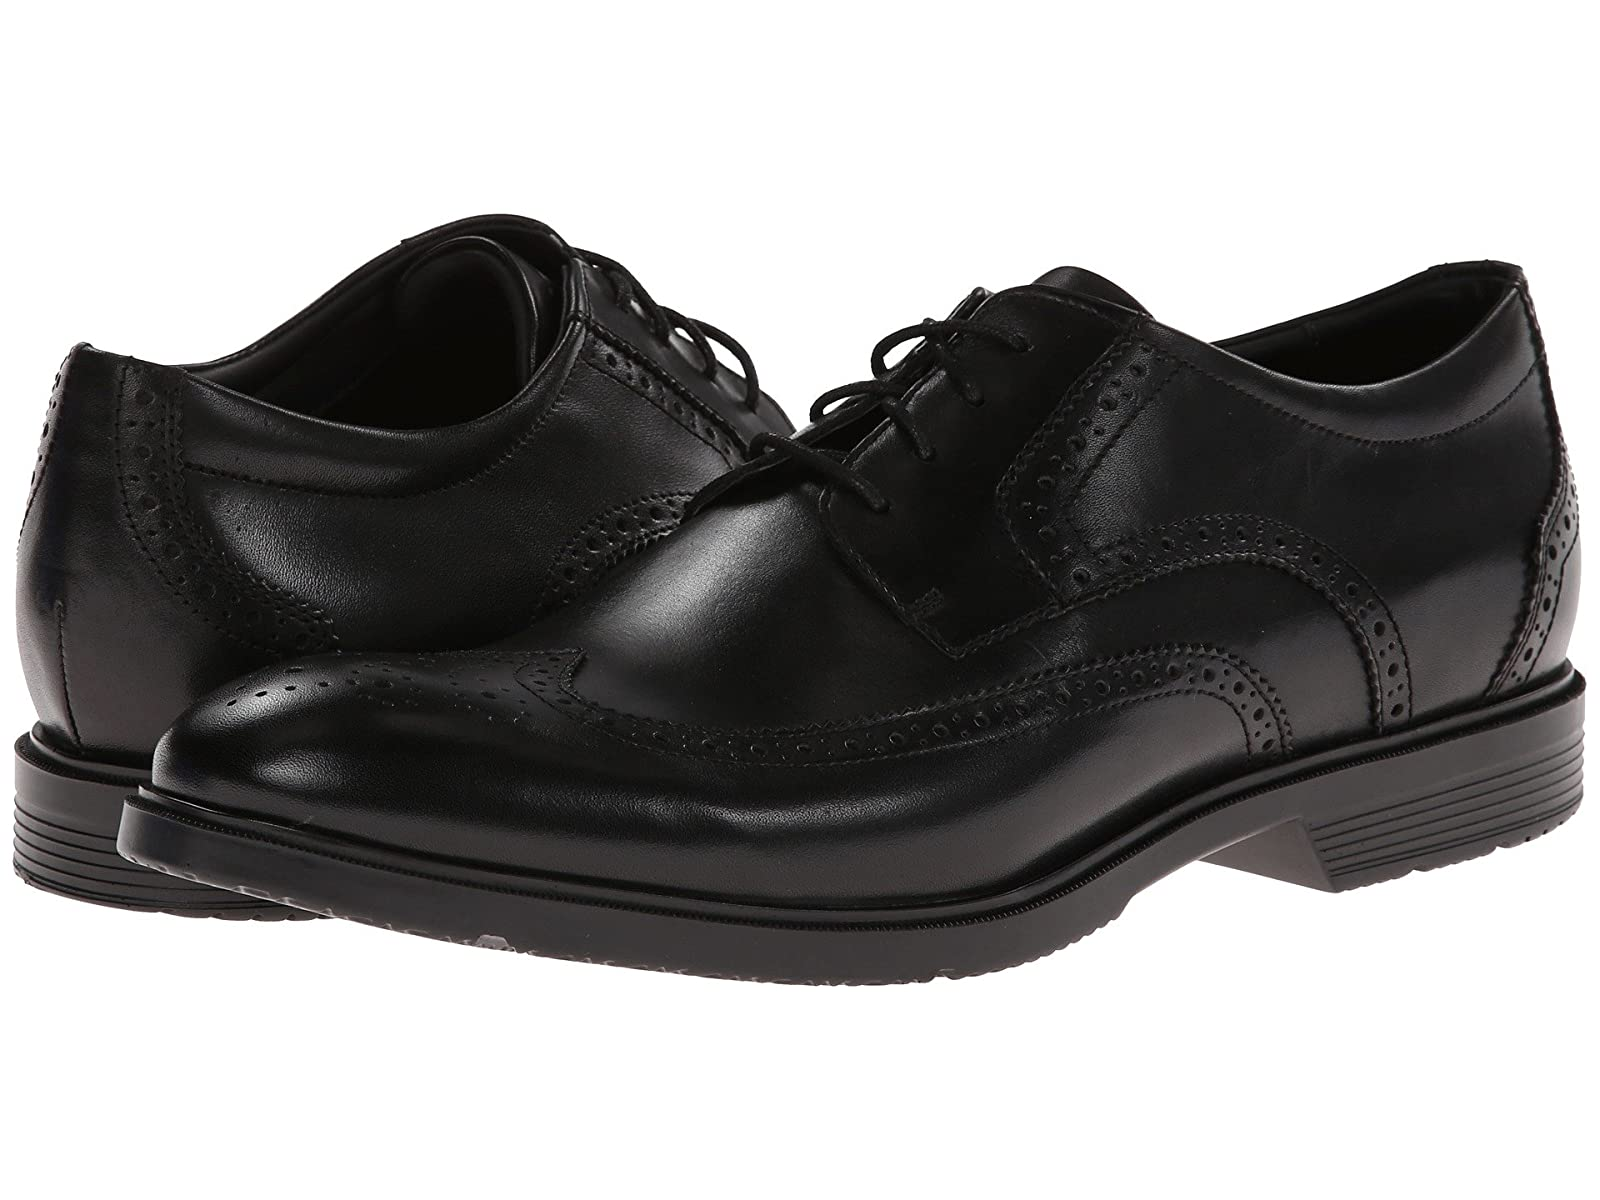 Rockport City Smart Wing Tip OxfordCheap and distinctive eye-catching shoes